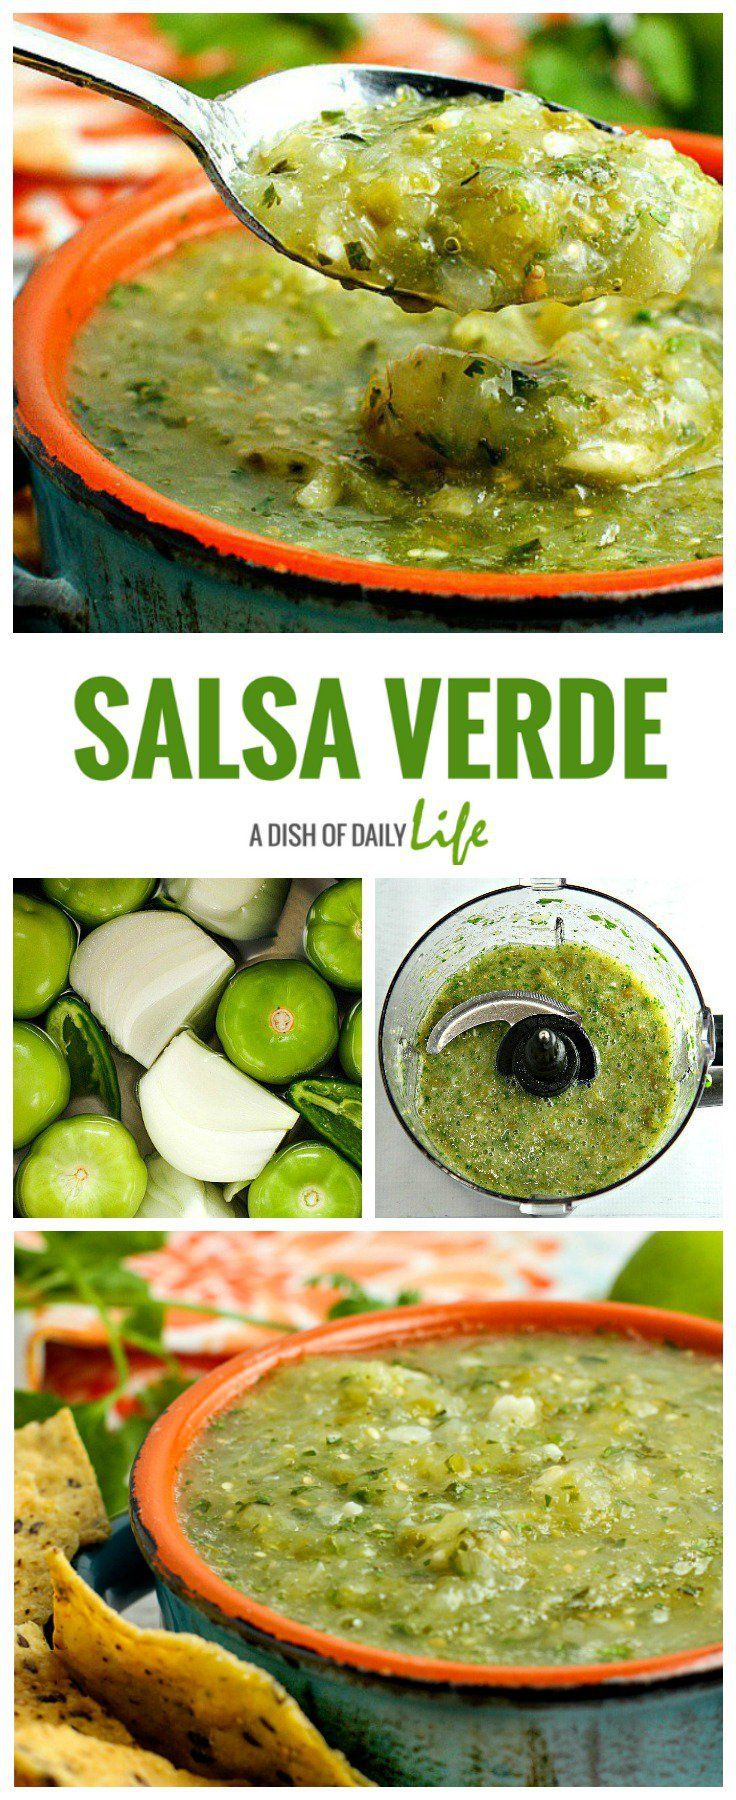 Learn how to make authentic Salsa Verde! This recipe will be a hit on Mexican night or Cinco de Mayo, perfect for game day too!  Great with chips, over burritos and enchiladas, and perfect as an accompaniment to just about any Mexican dish!  Cinco de Mayo | Mexican recipes | appetizer | tomatillo salsa